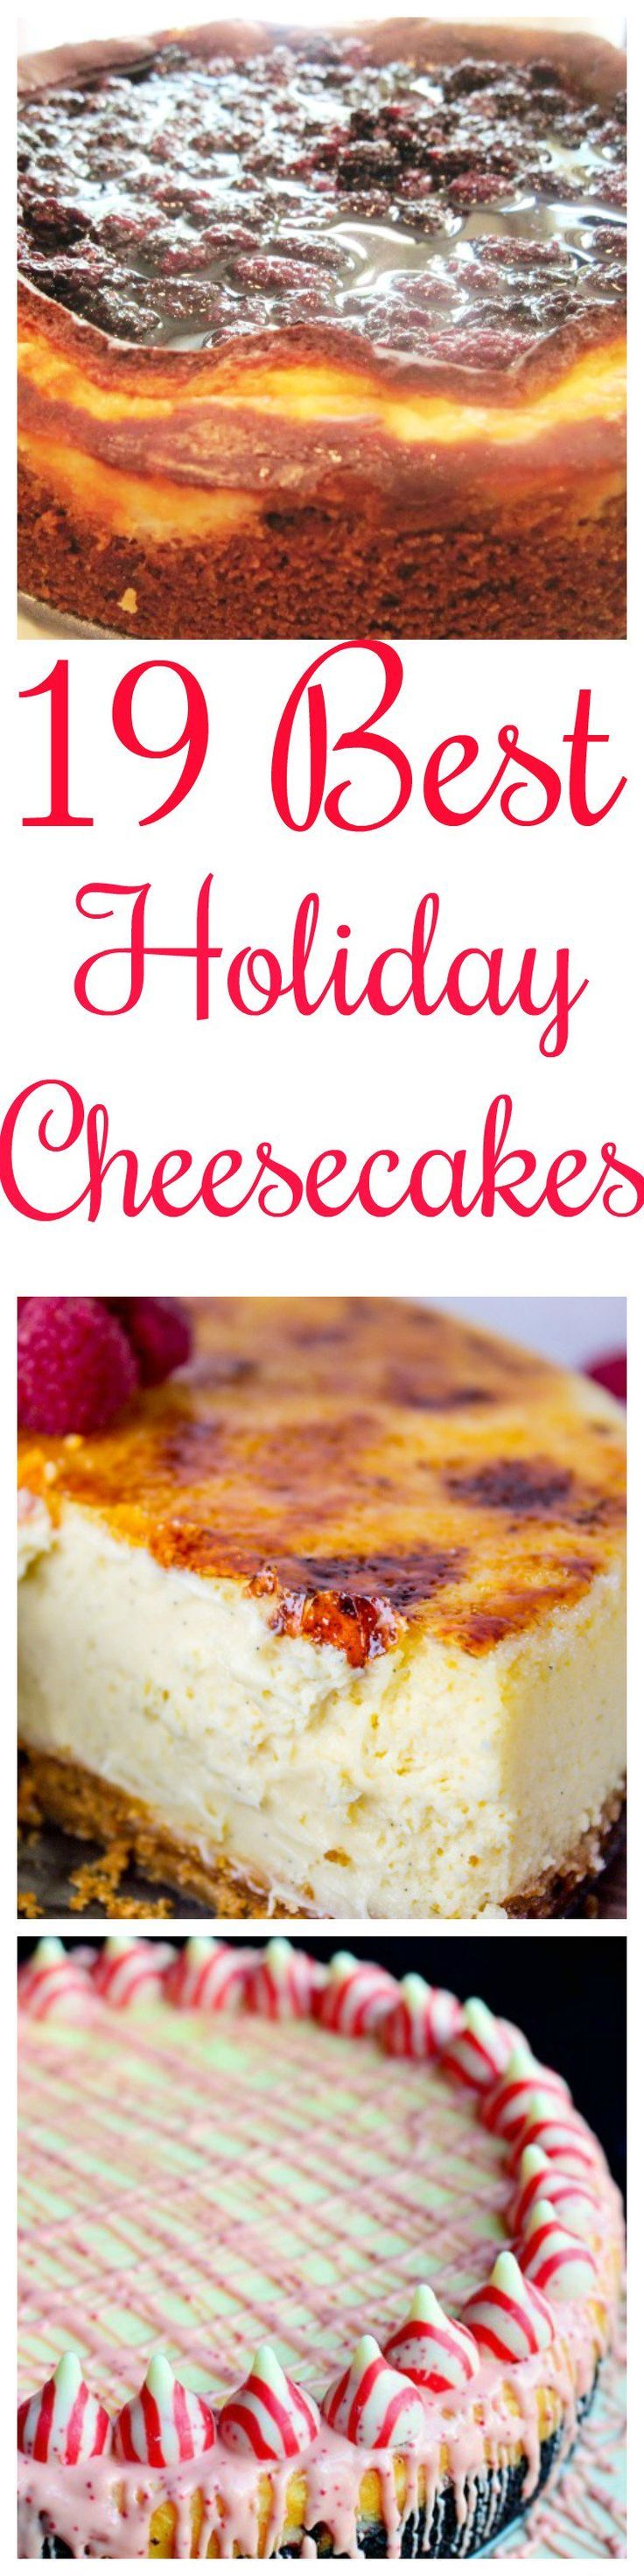 19 Best Holiday Cheesecakes to make your holiday even more delicious!